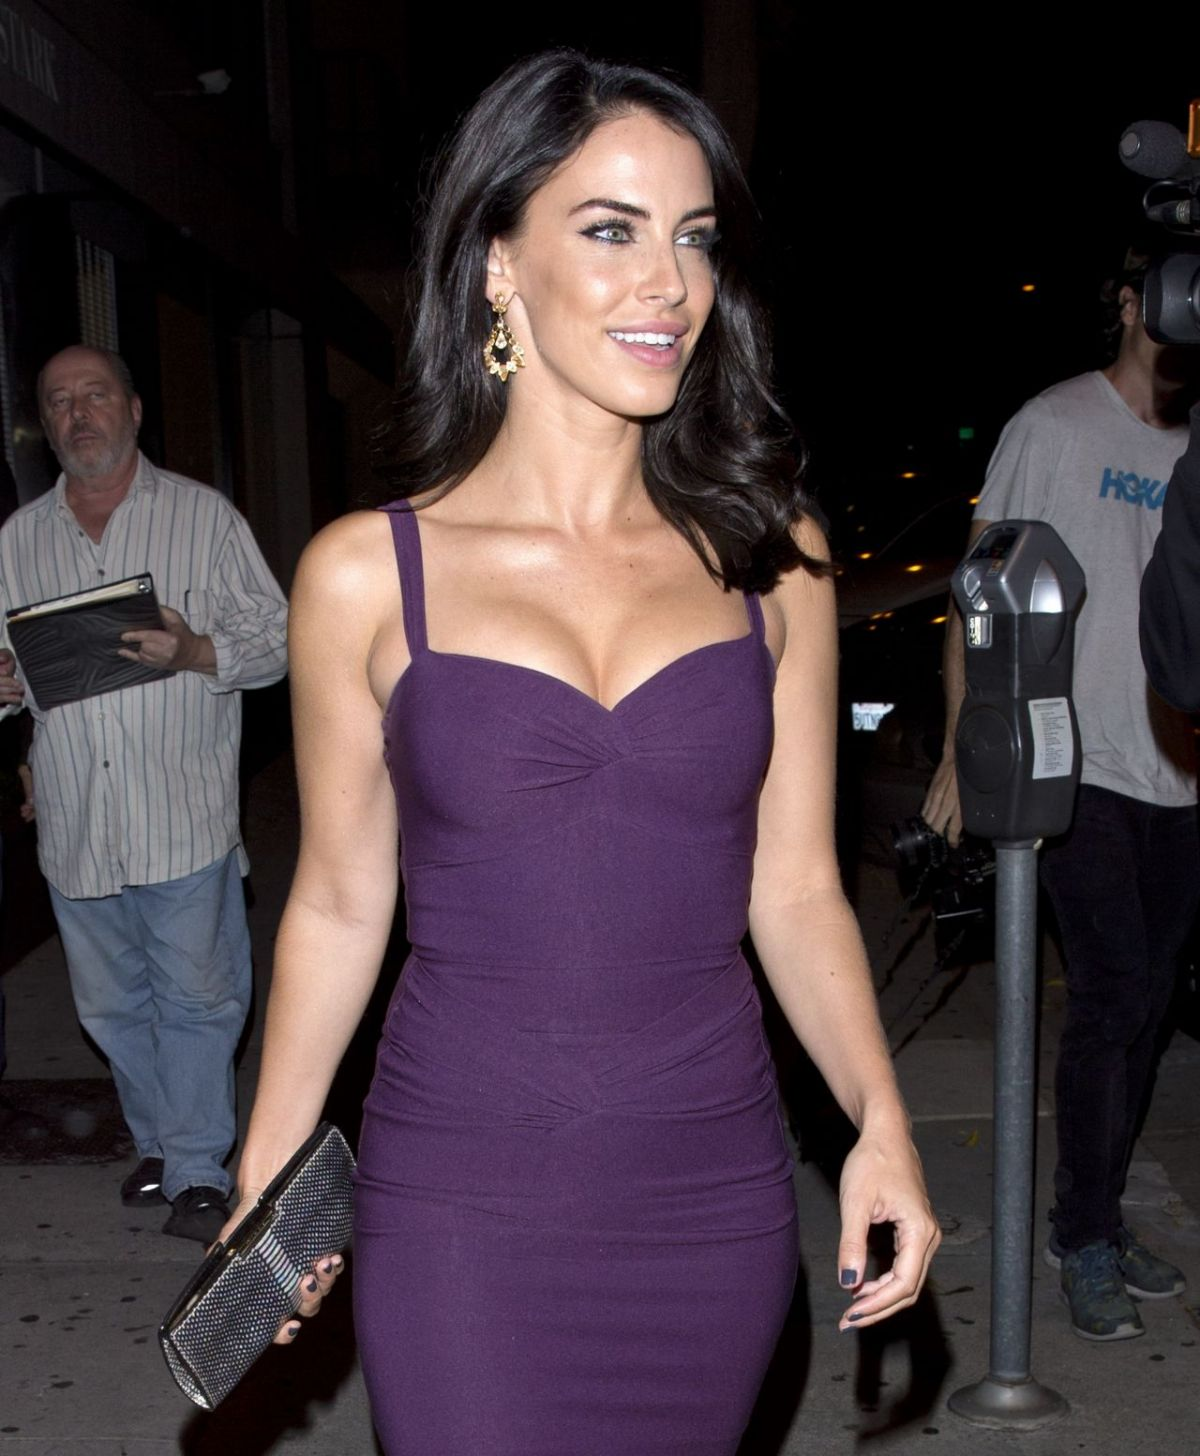 Jessica lowndes arriving at bunga bunga in covent garden in london new images